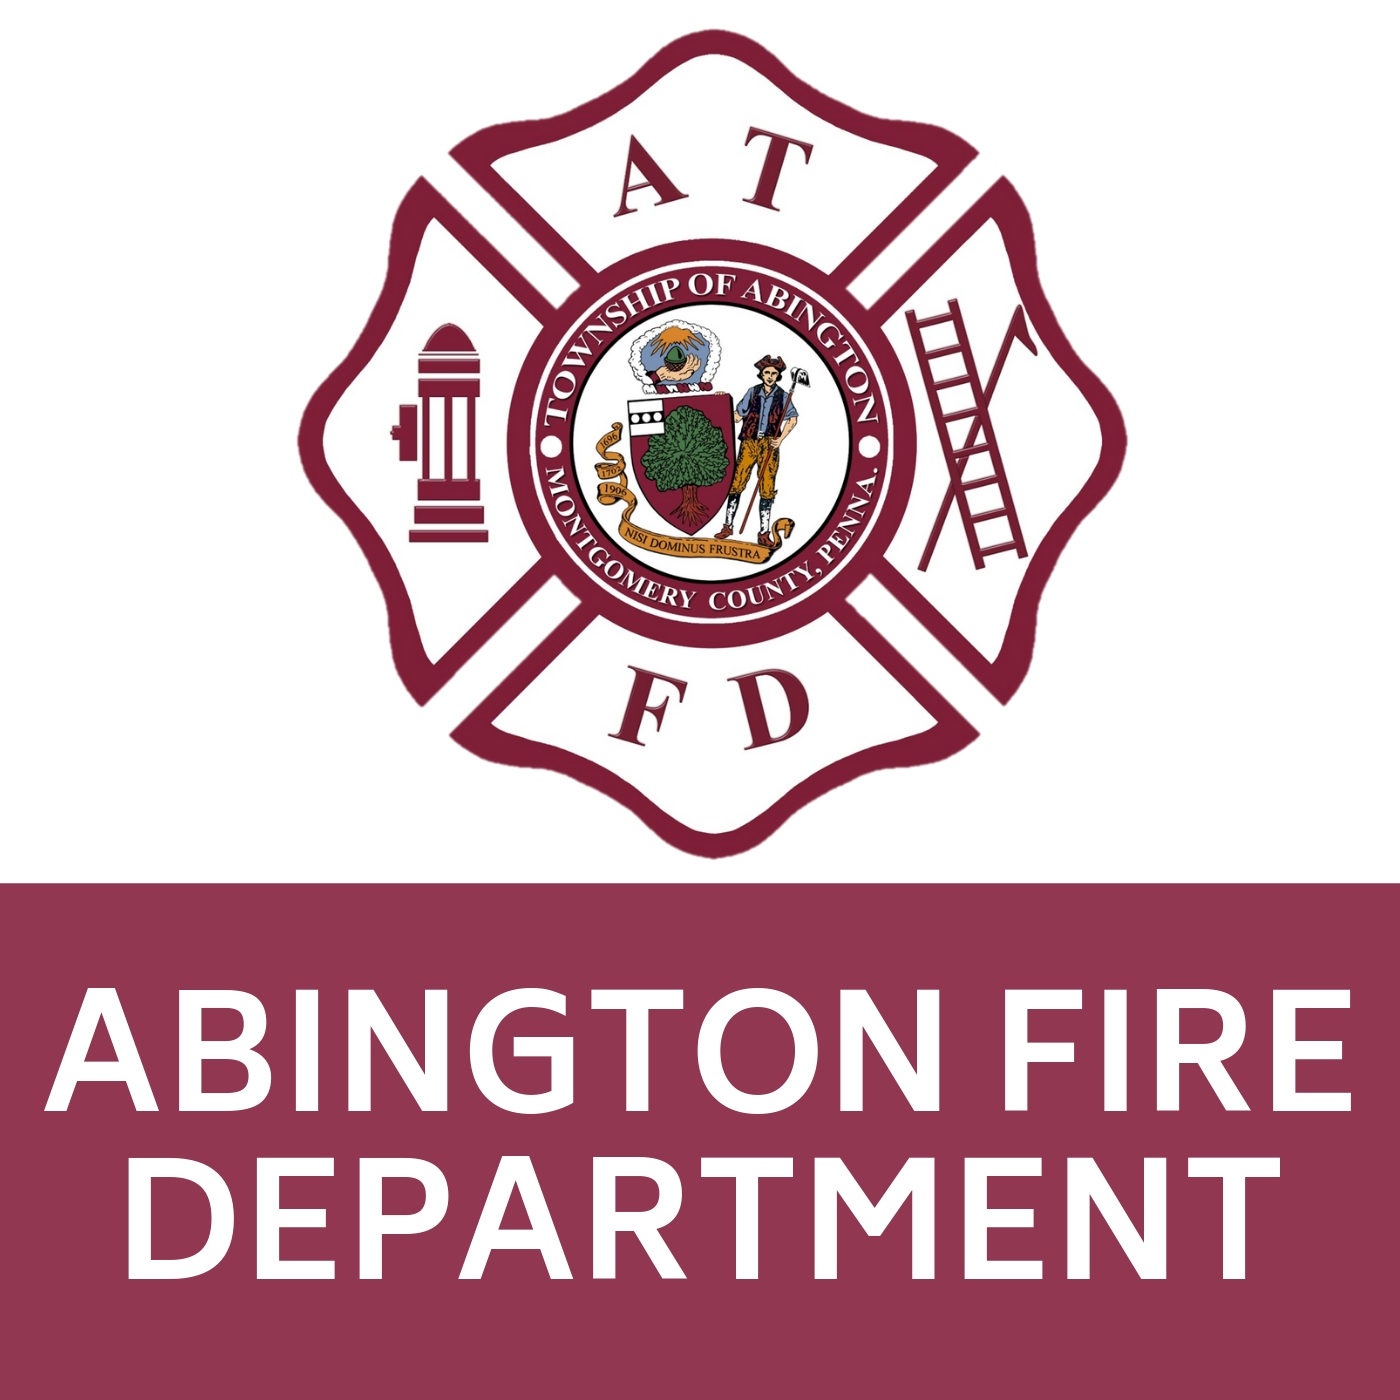 Abington Fire Department Symbol that links to http://www.abingtonfd.org/.